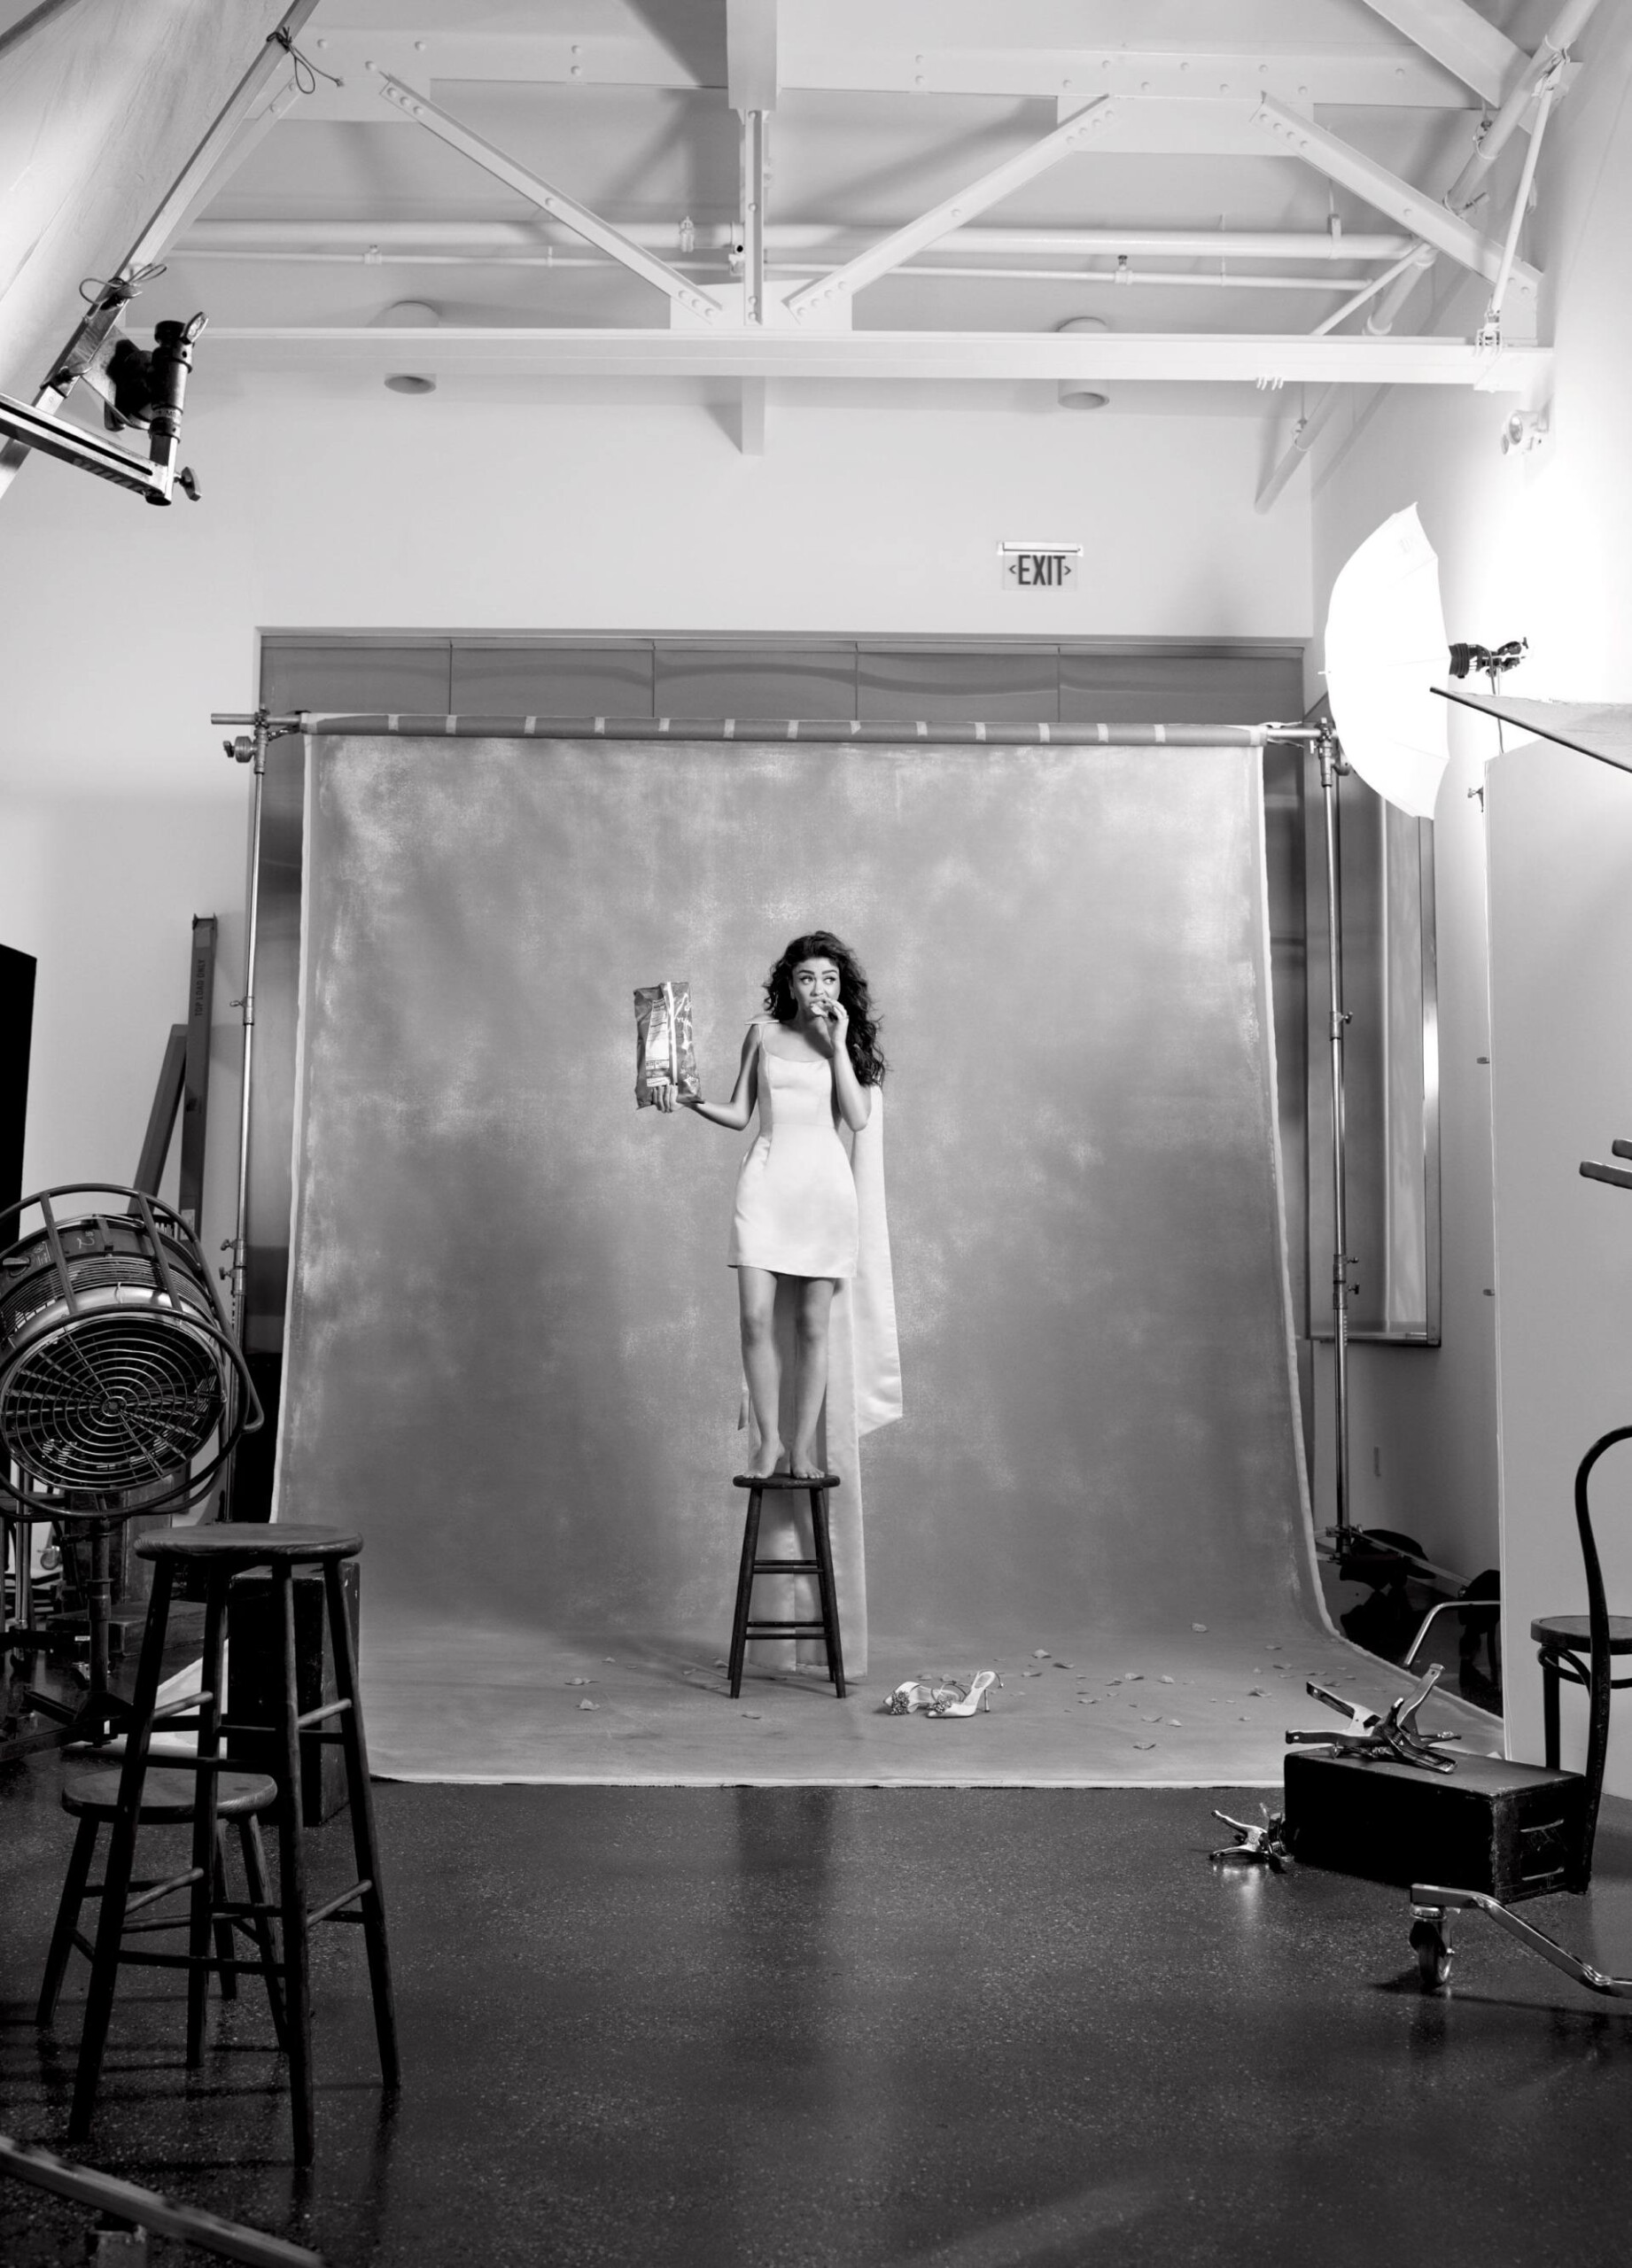 Sarah Hyland Sexy Legs In Alluring Photoshoot For Cosmopolitan Magazine (may 2020) 0006